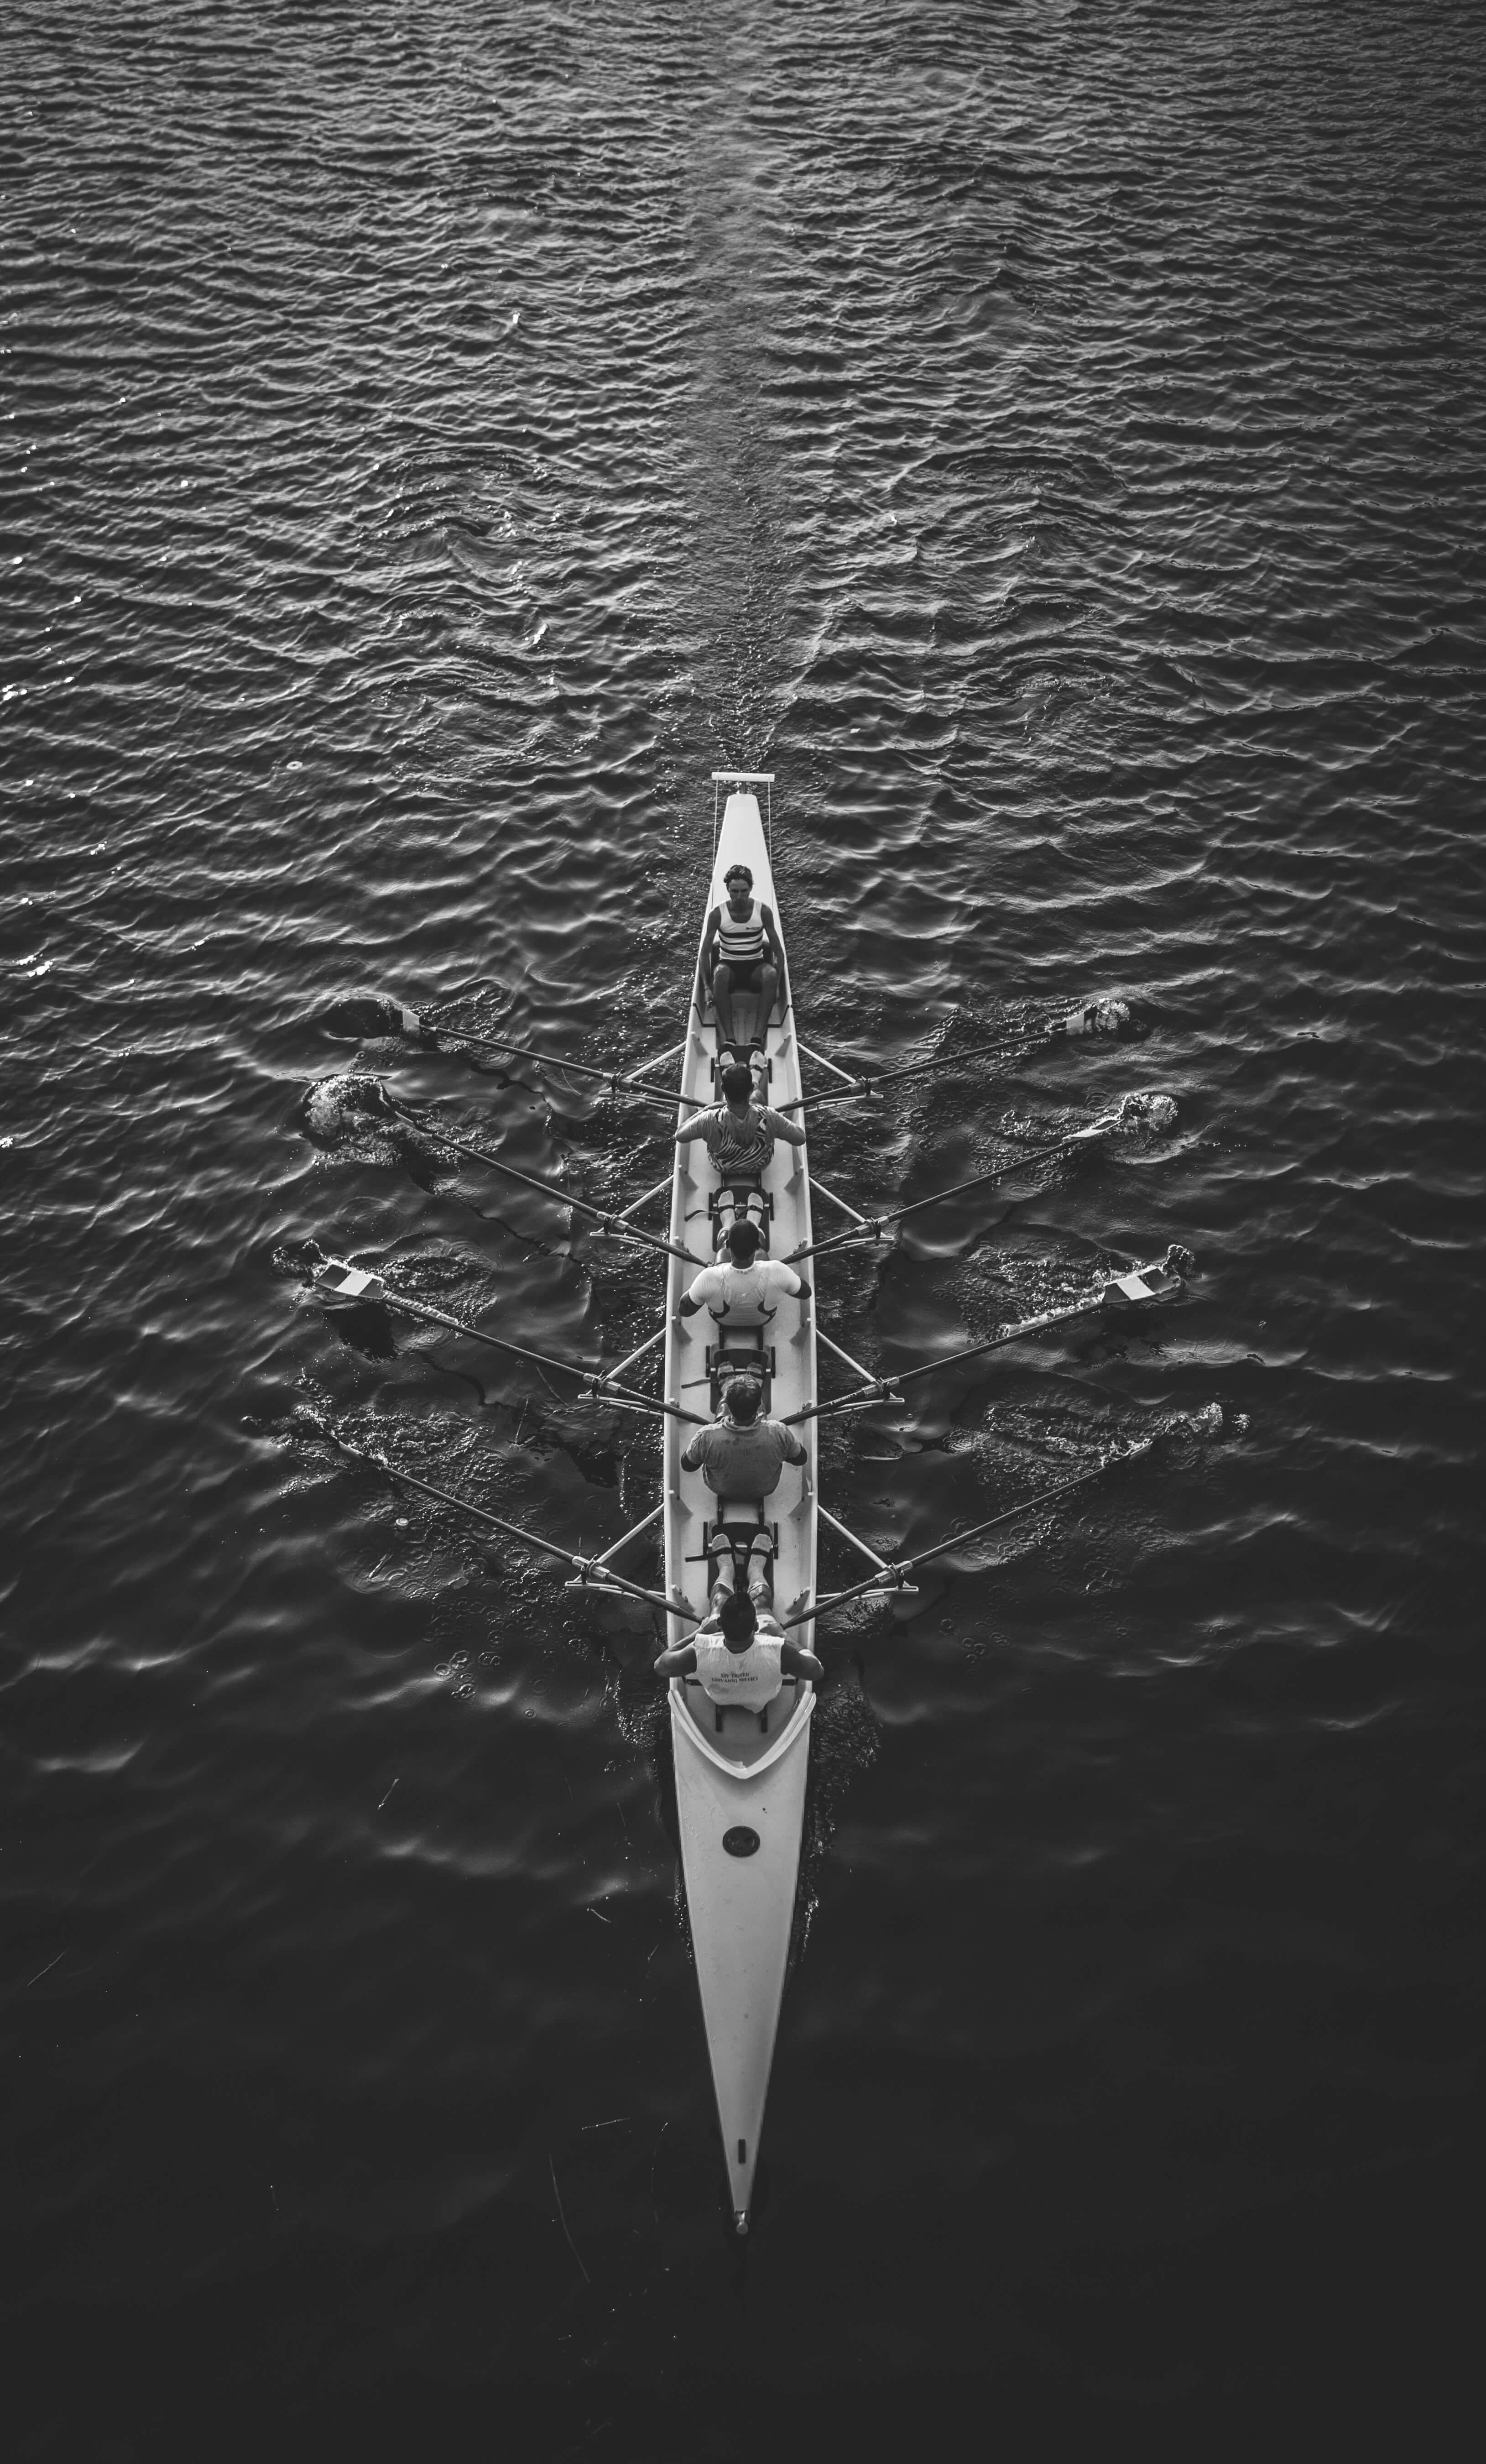 black and white birds eye view photo of people rowing